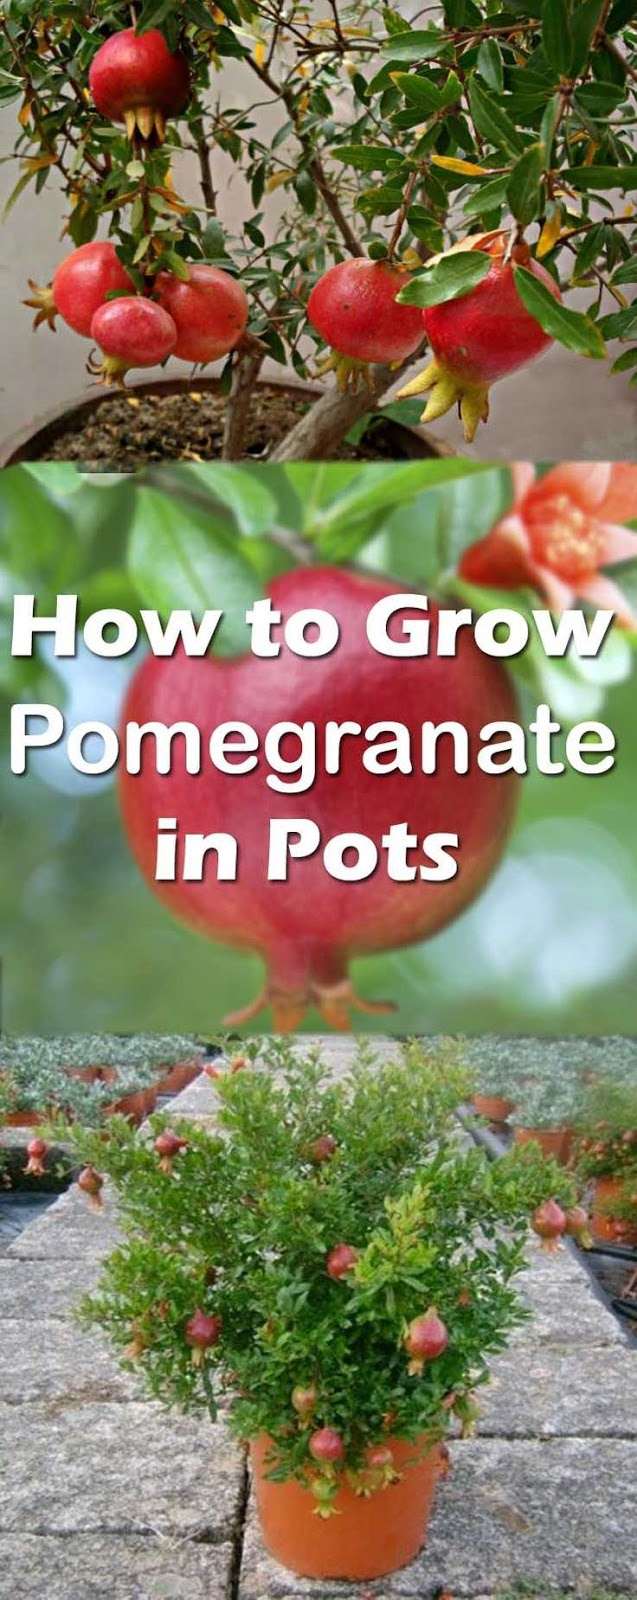 Easy Tips How to Grow Pomegranate From Seed, Grow Your Own ... Pomegranate Trees In Garden Design on orange tree garden, peach tree garden, apple tree garden, tea tree garden, orchard tree garden, peony tree garden, guava tree garden, rose tree garden, grape tree garden, olive tree garden, fruit tree garden, cherry tree garden, japanese maple tree garden, pine tree garden, white tree garden, pepper tree garden, coconut tree garden, mango tree garden, lilac tree garden, raspberry tree garden,